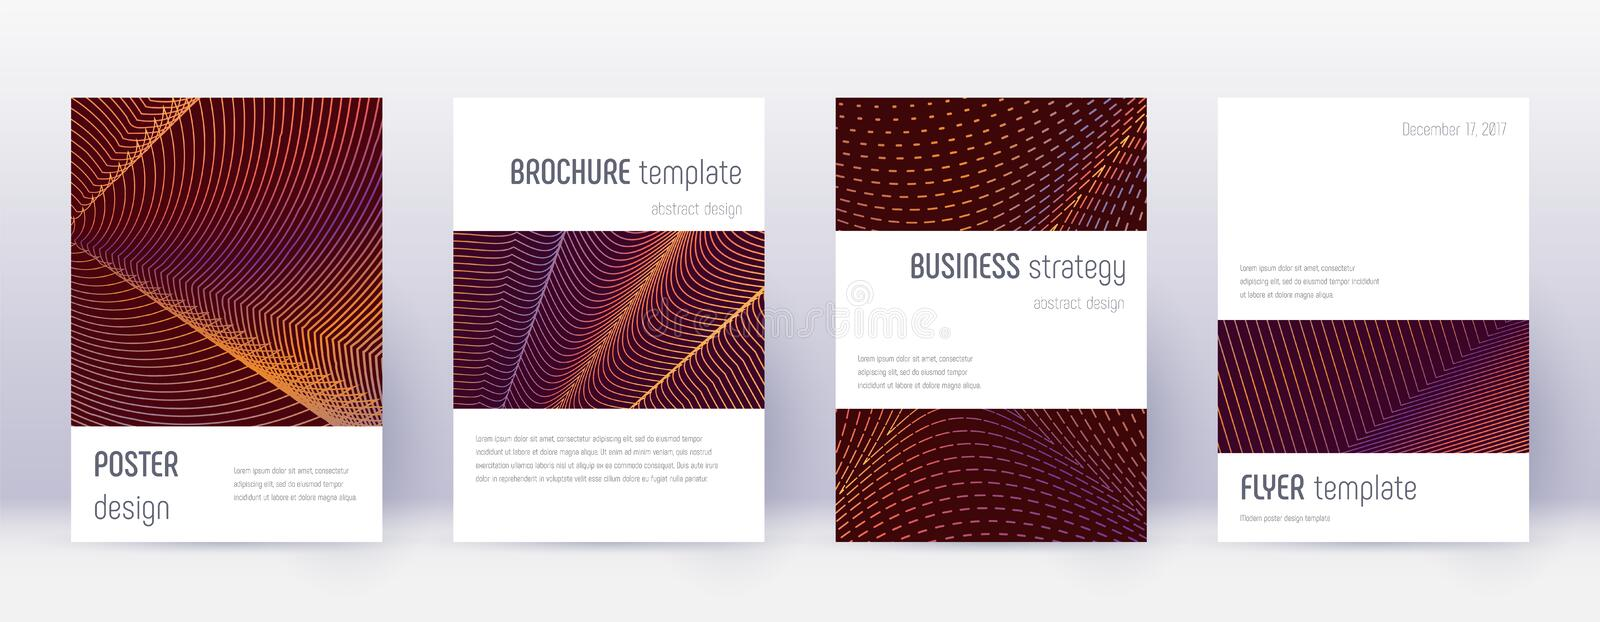 Minimalistic brochure design template set. Orange. Abstract lines on wine red background. Attractive brochure design. Cute catalog, poster, book template etc stock illustration